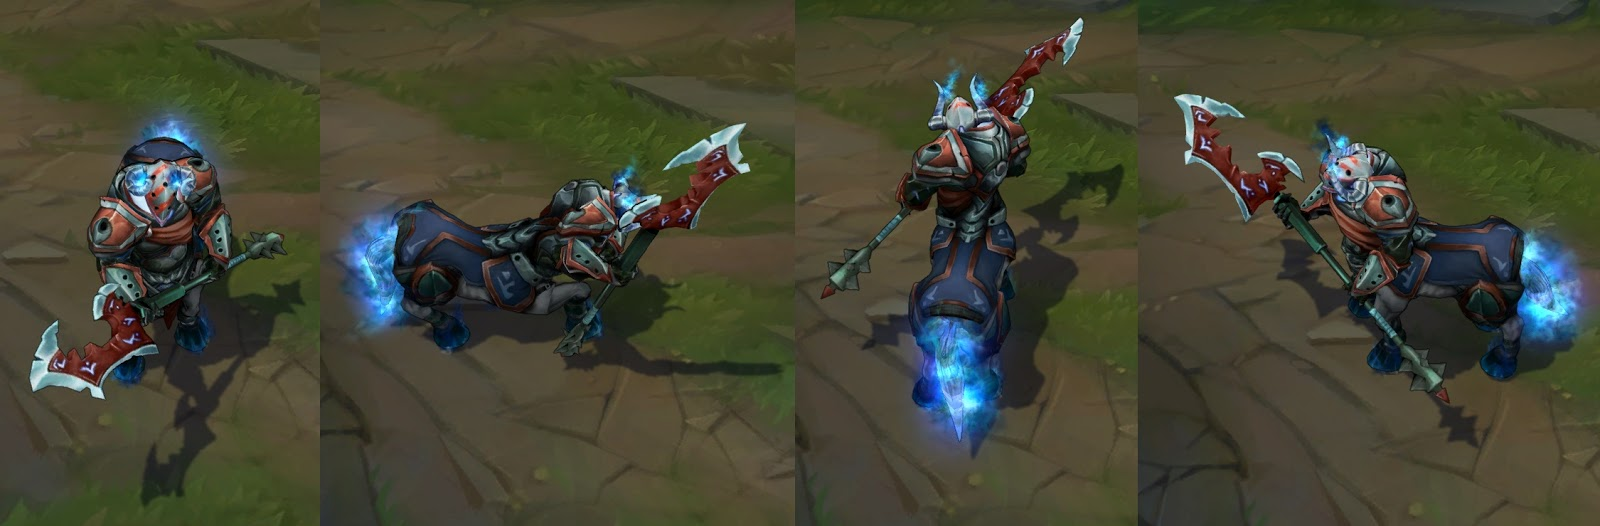 Blood Knight Hecarim - LeagueSales